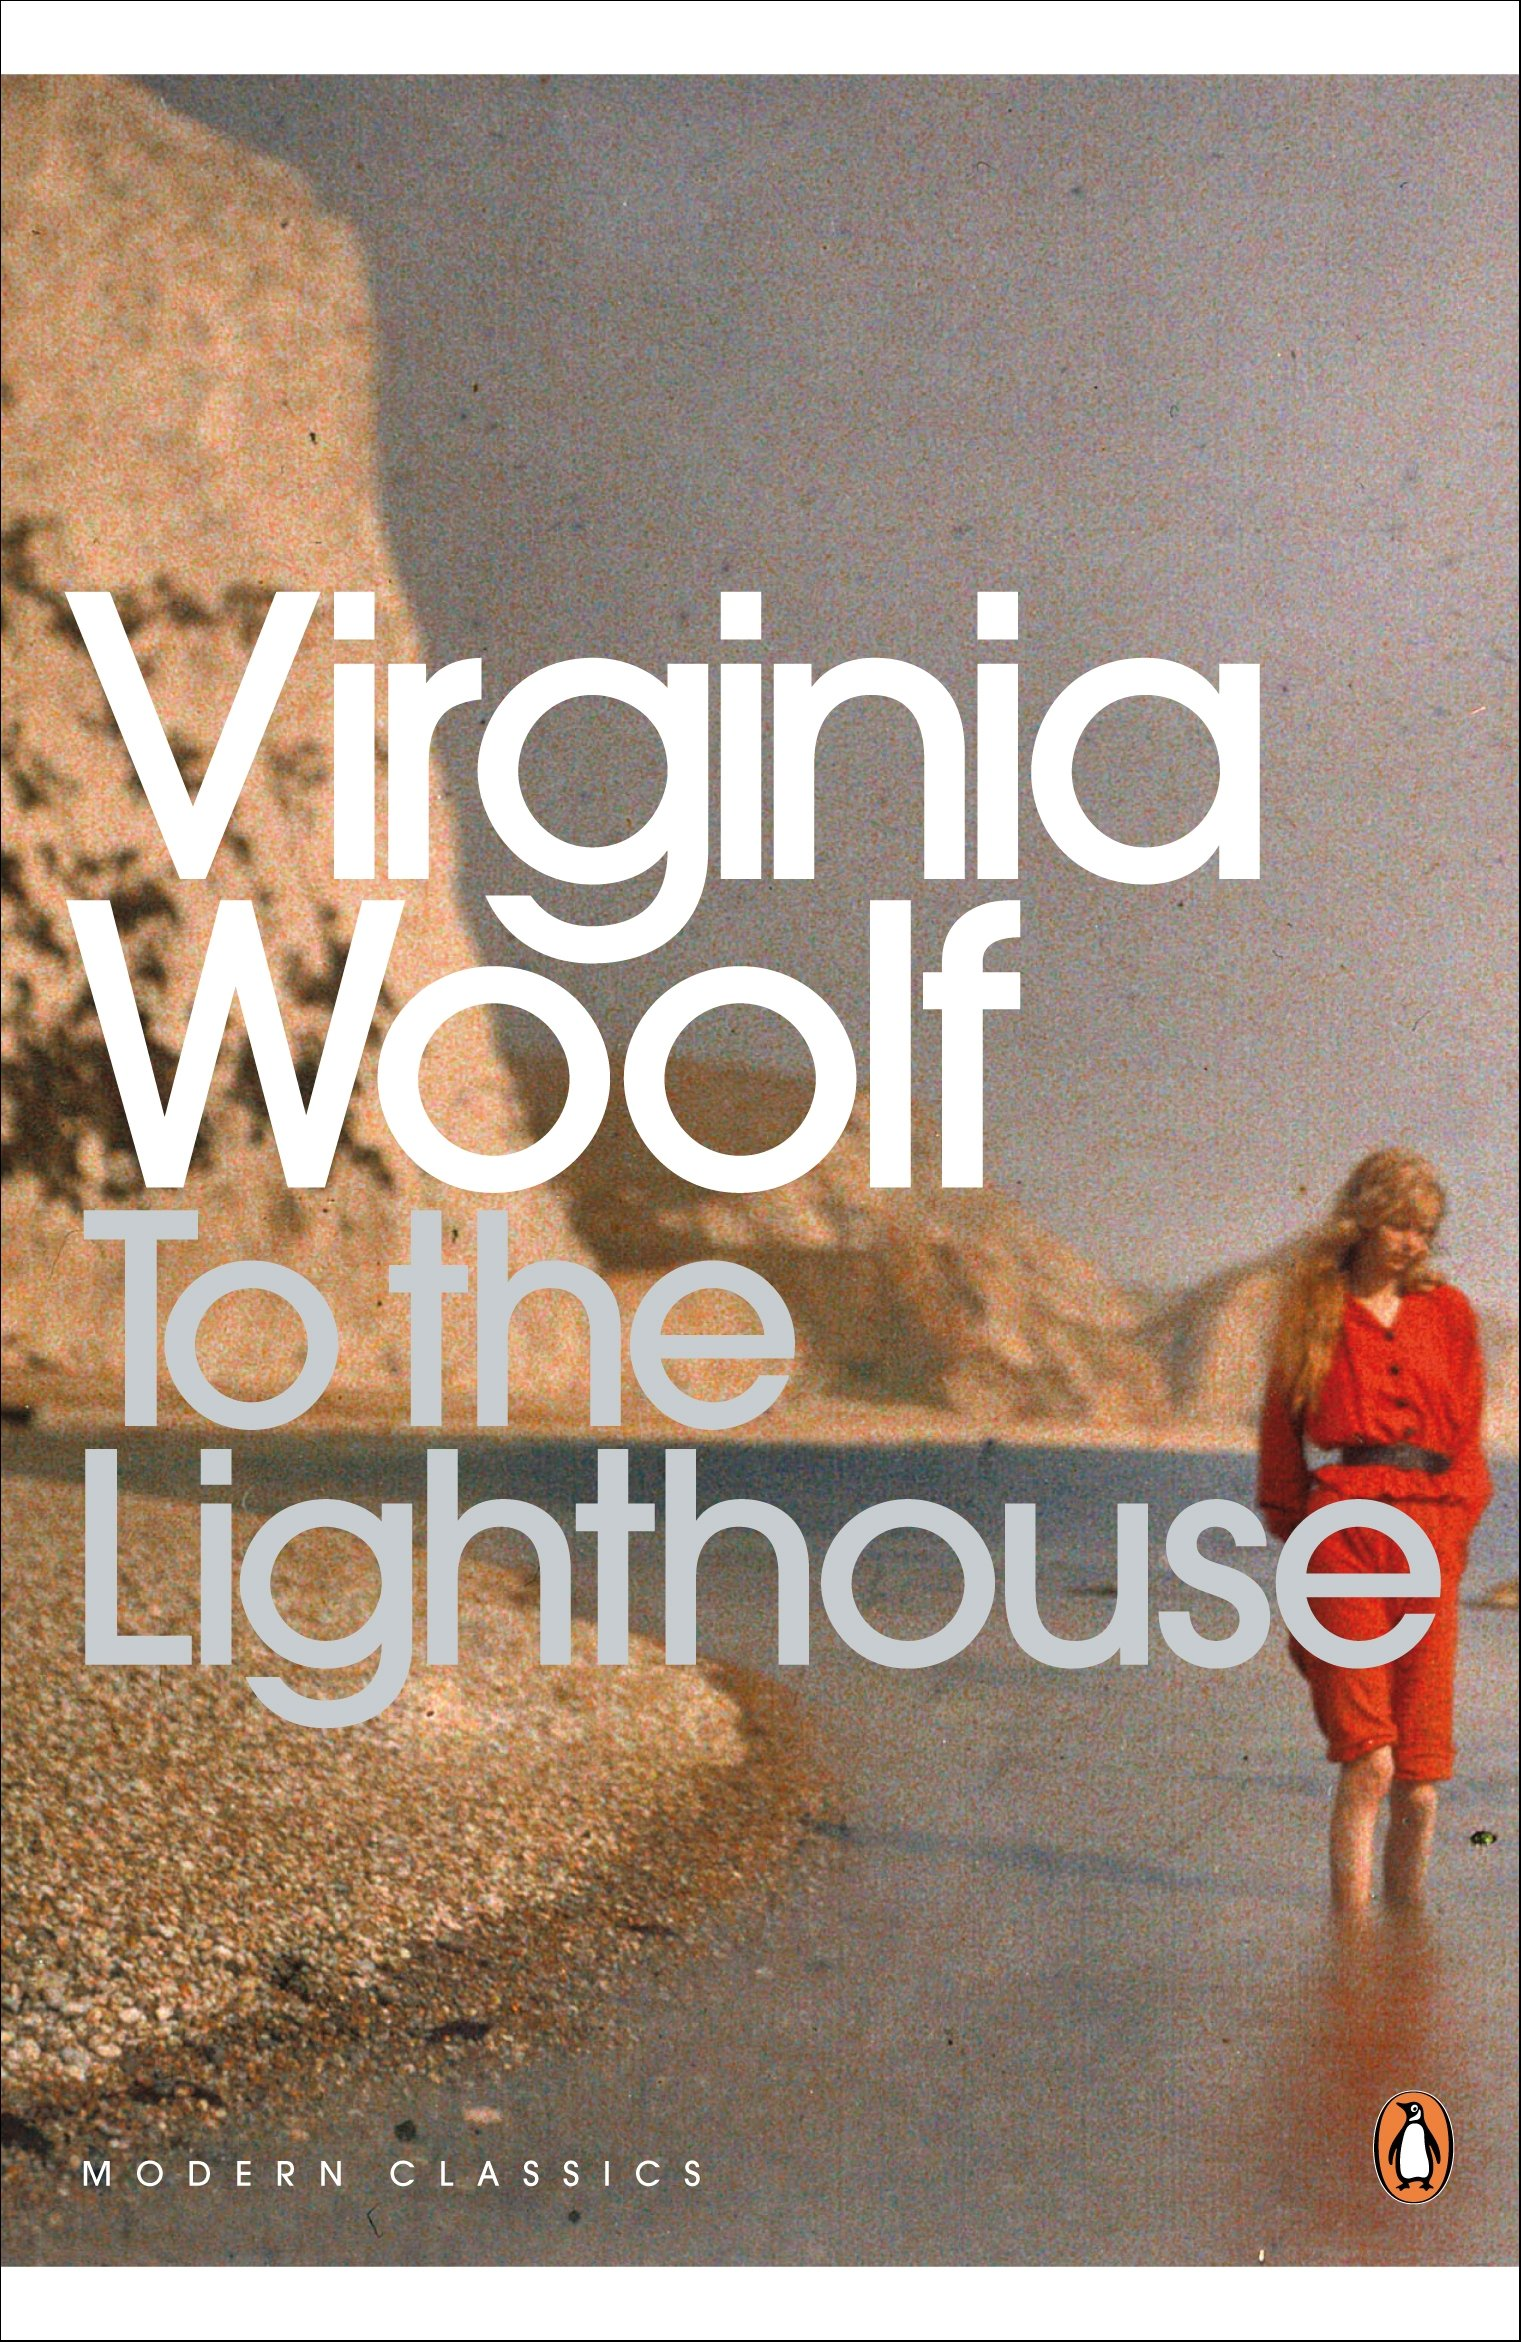 modern classics to the lighthouse penguin modern classics modern classics to the lighthouse penguin modern classics virginia woolf stella mcnichol hermione lee 9780141183411 com books